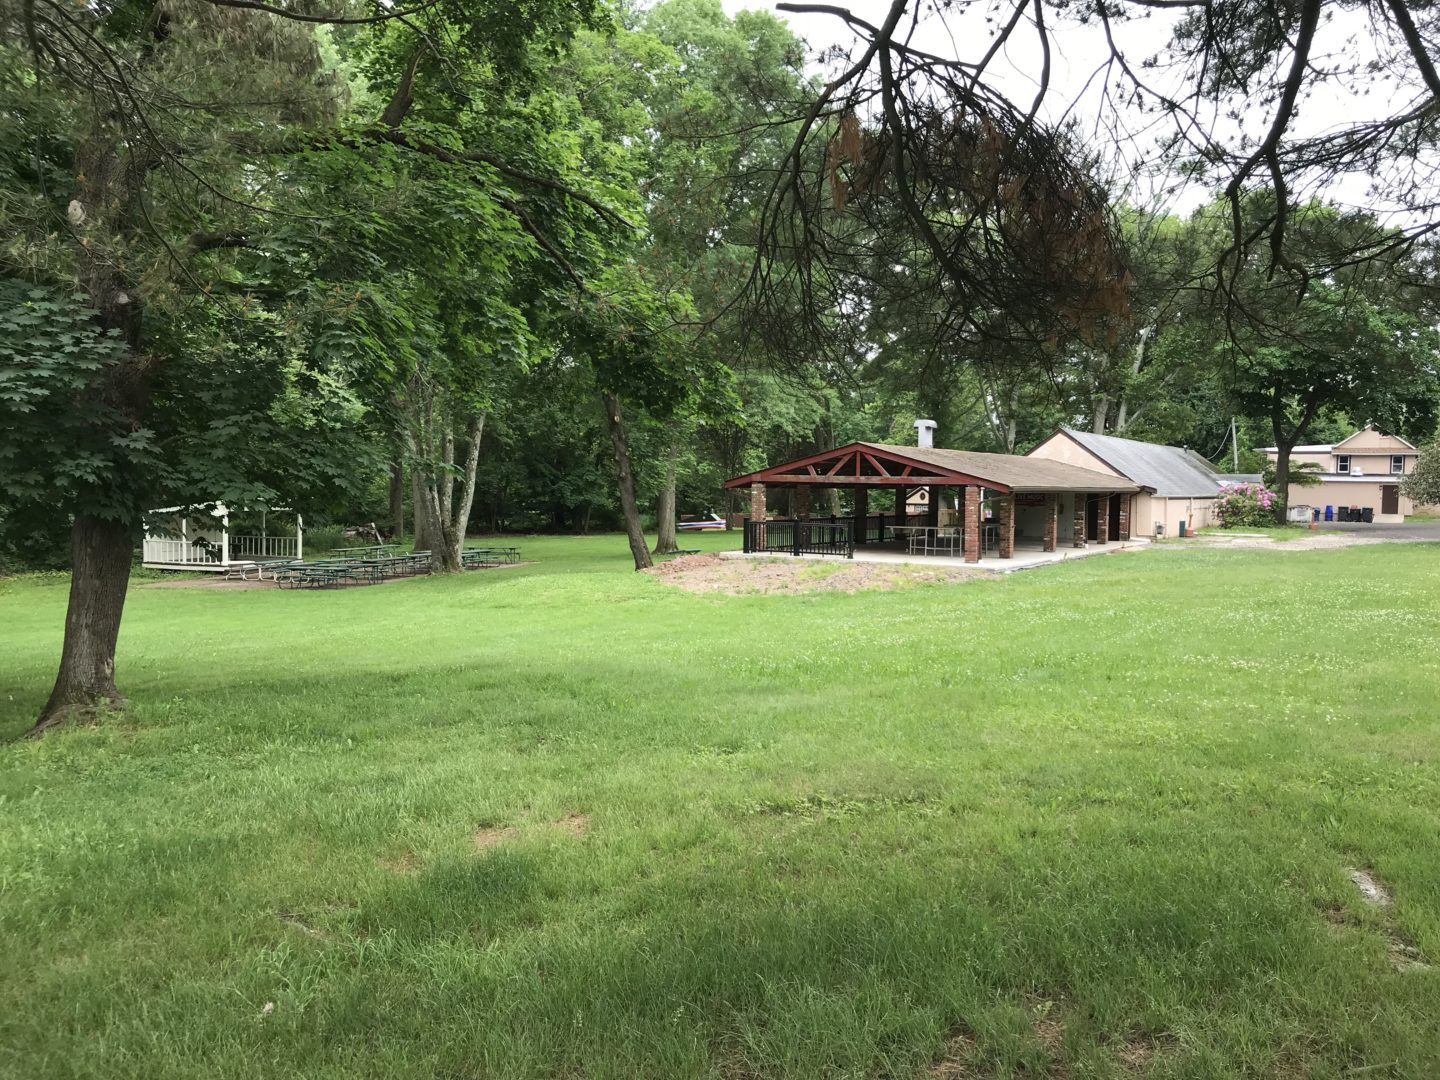 Pavillion, Picnic Grounds and Bandstand